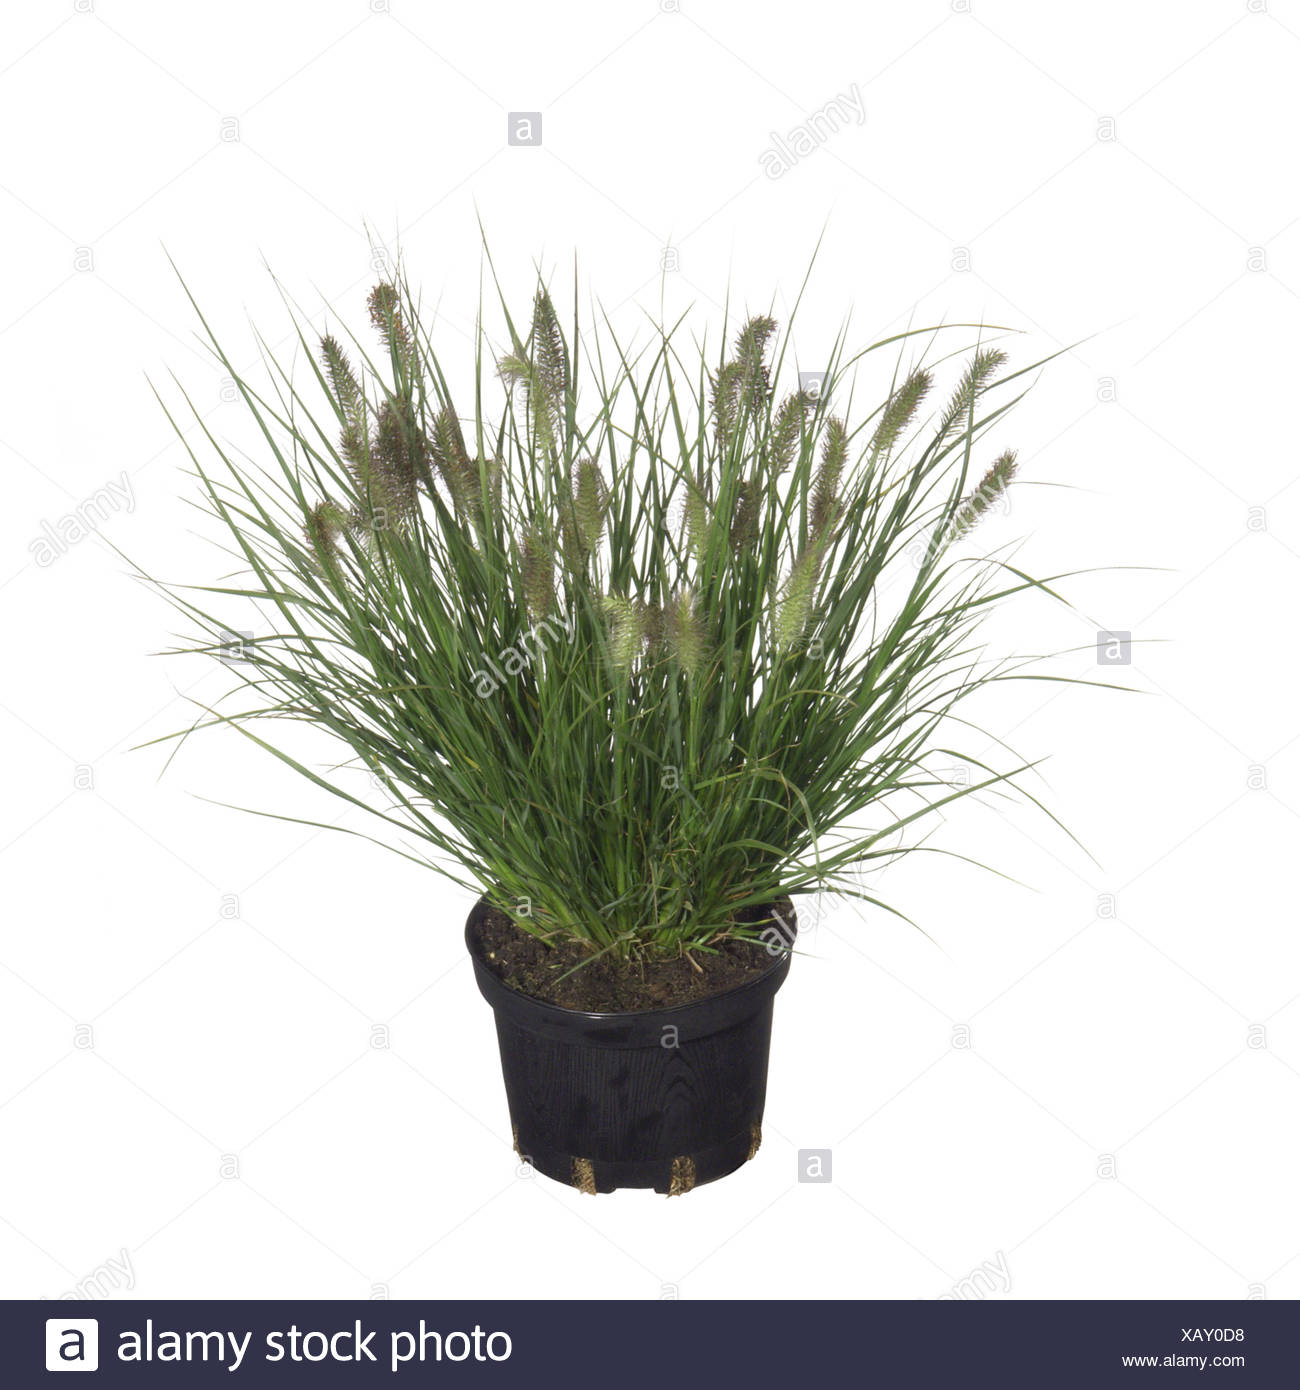 fountain grass (Pennisetum alopecuroides), potted plant - Stock Image